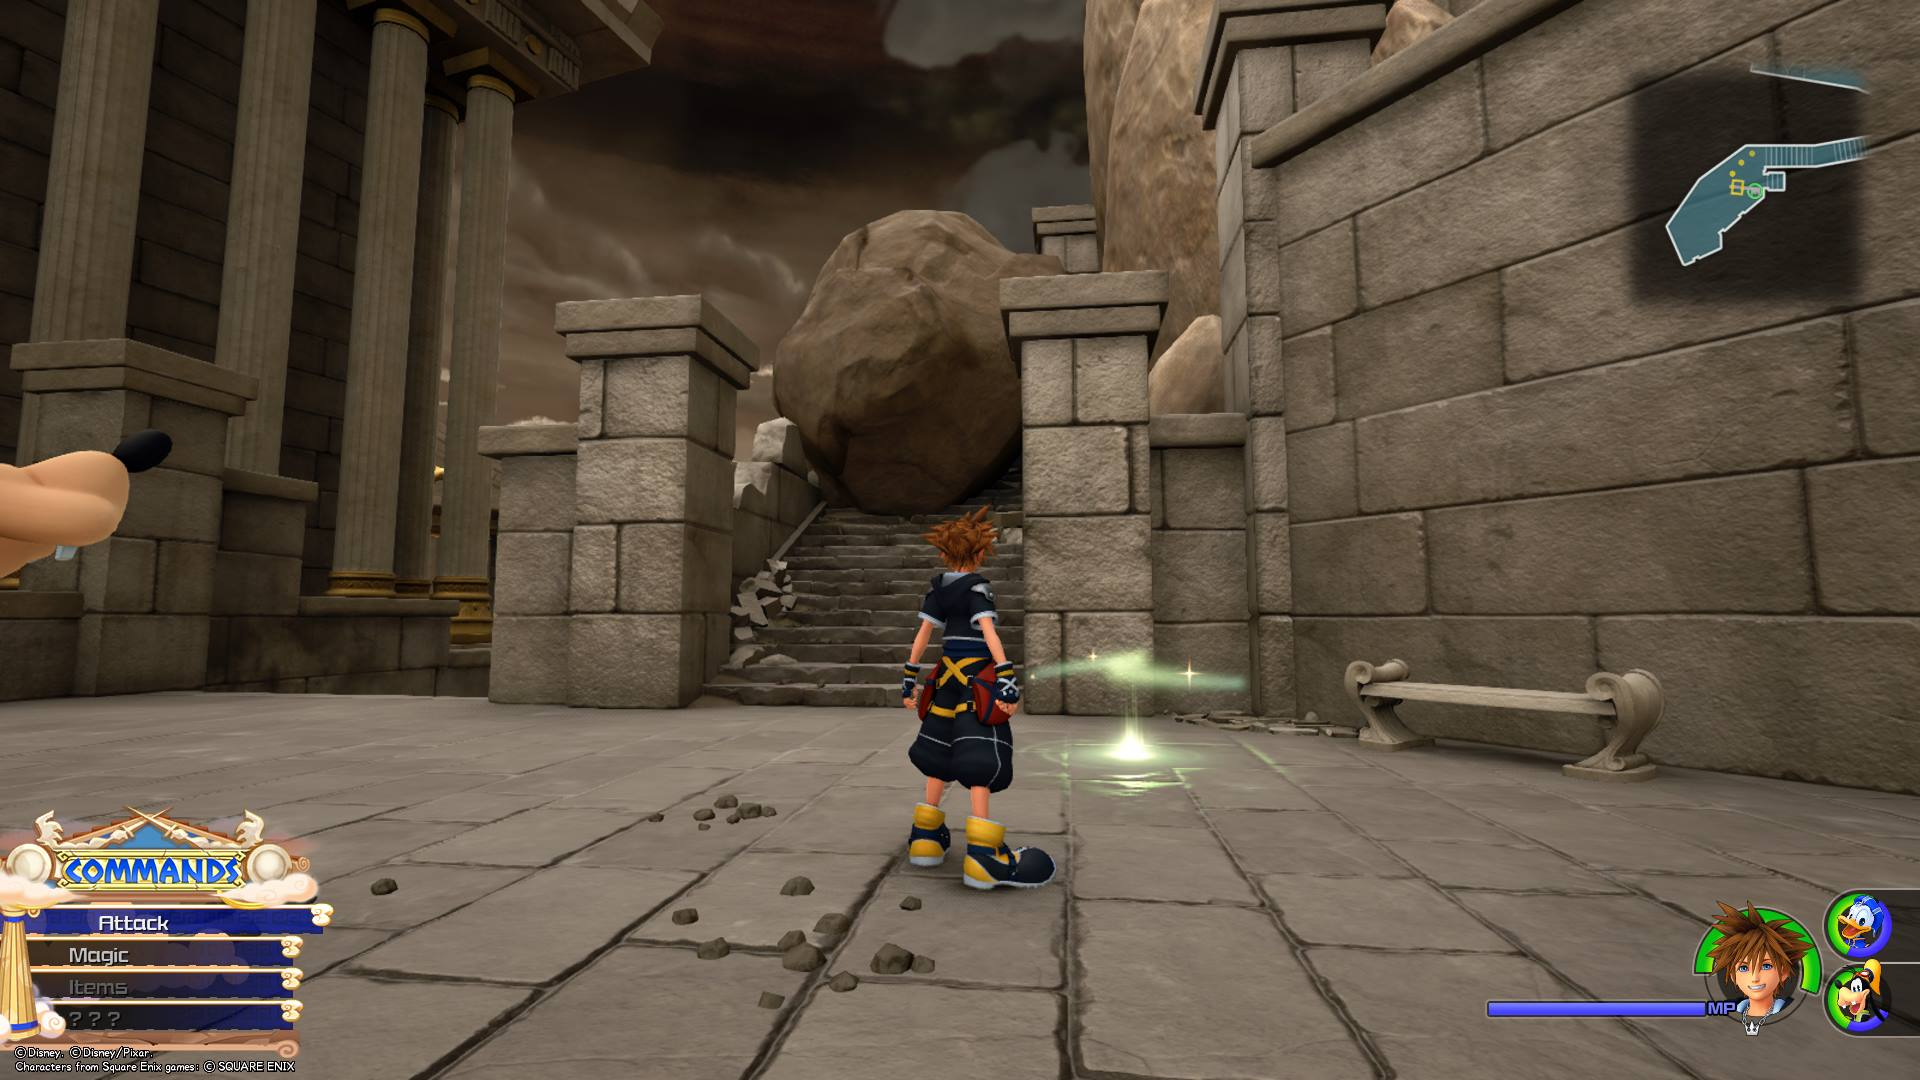 Save points appear as glowing green circles of light in Kingdom Hearts 3.